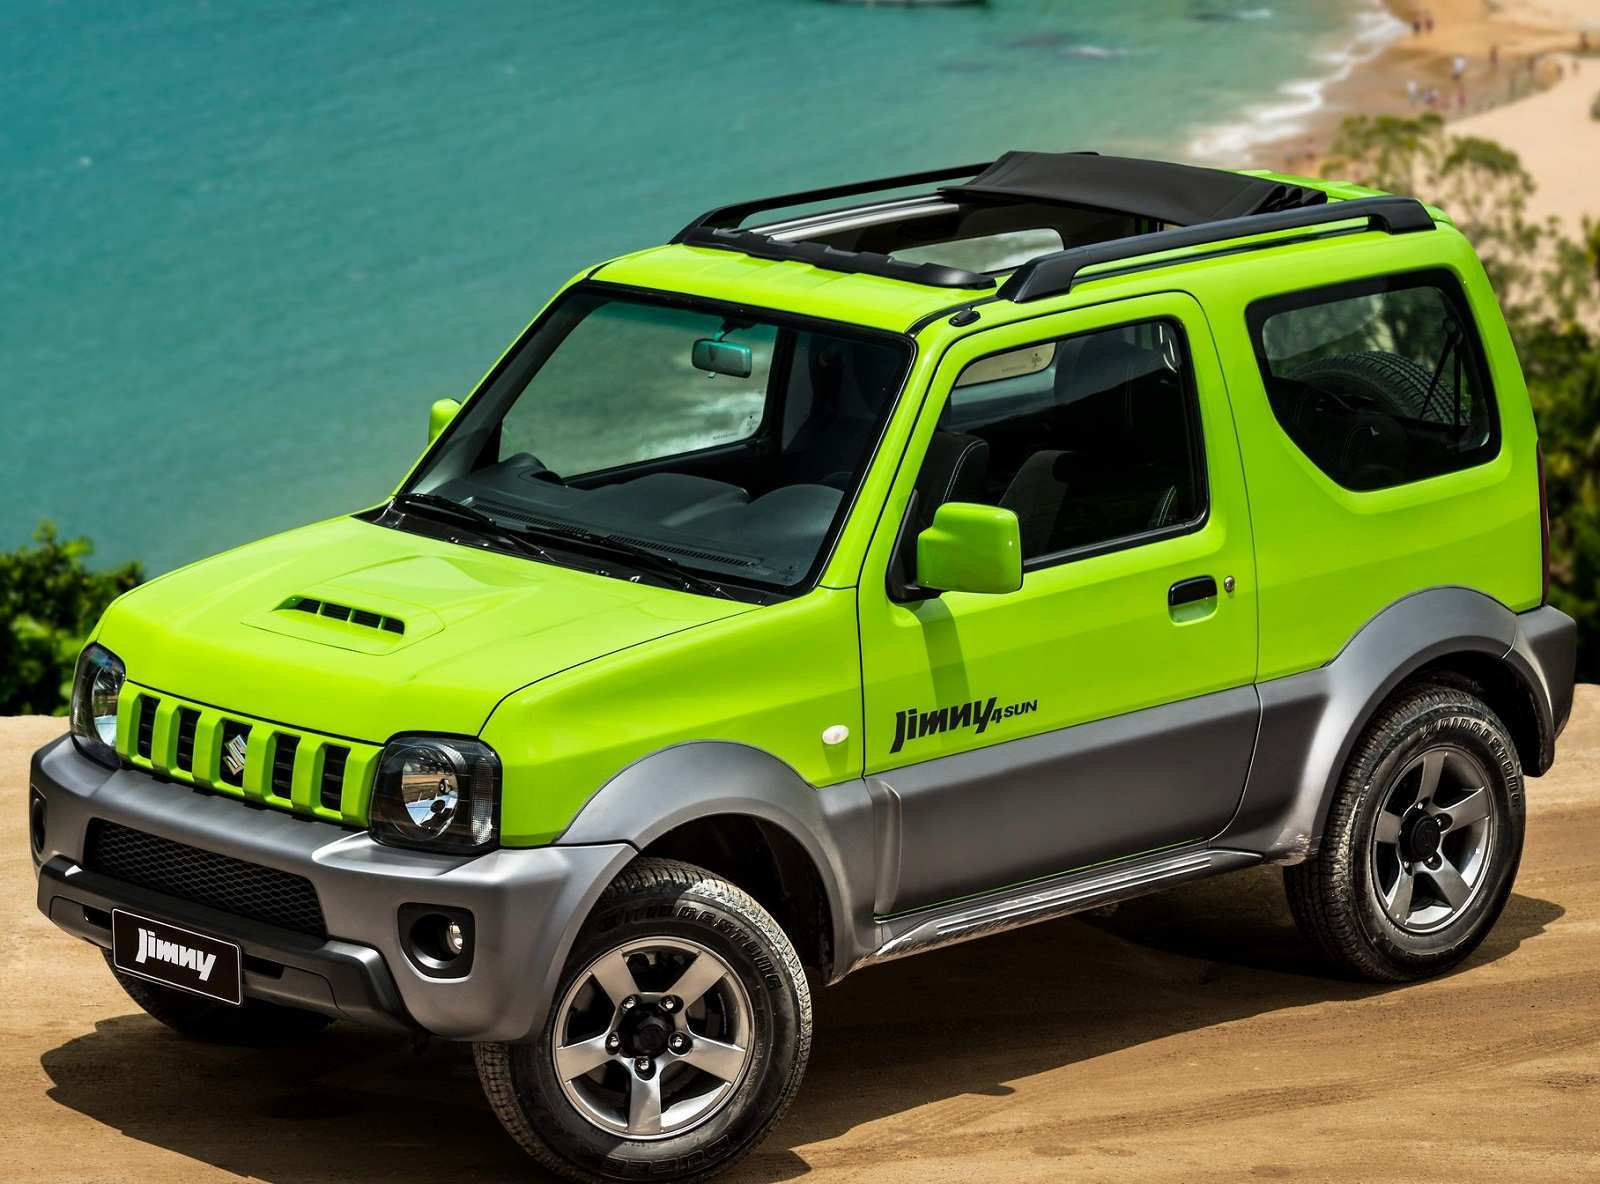 24 Gallery of Suzuki Jimny 2020 Model Rumors with Suzuki Jimny 2020 Model